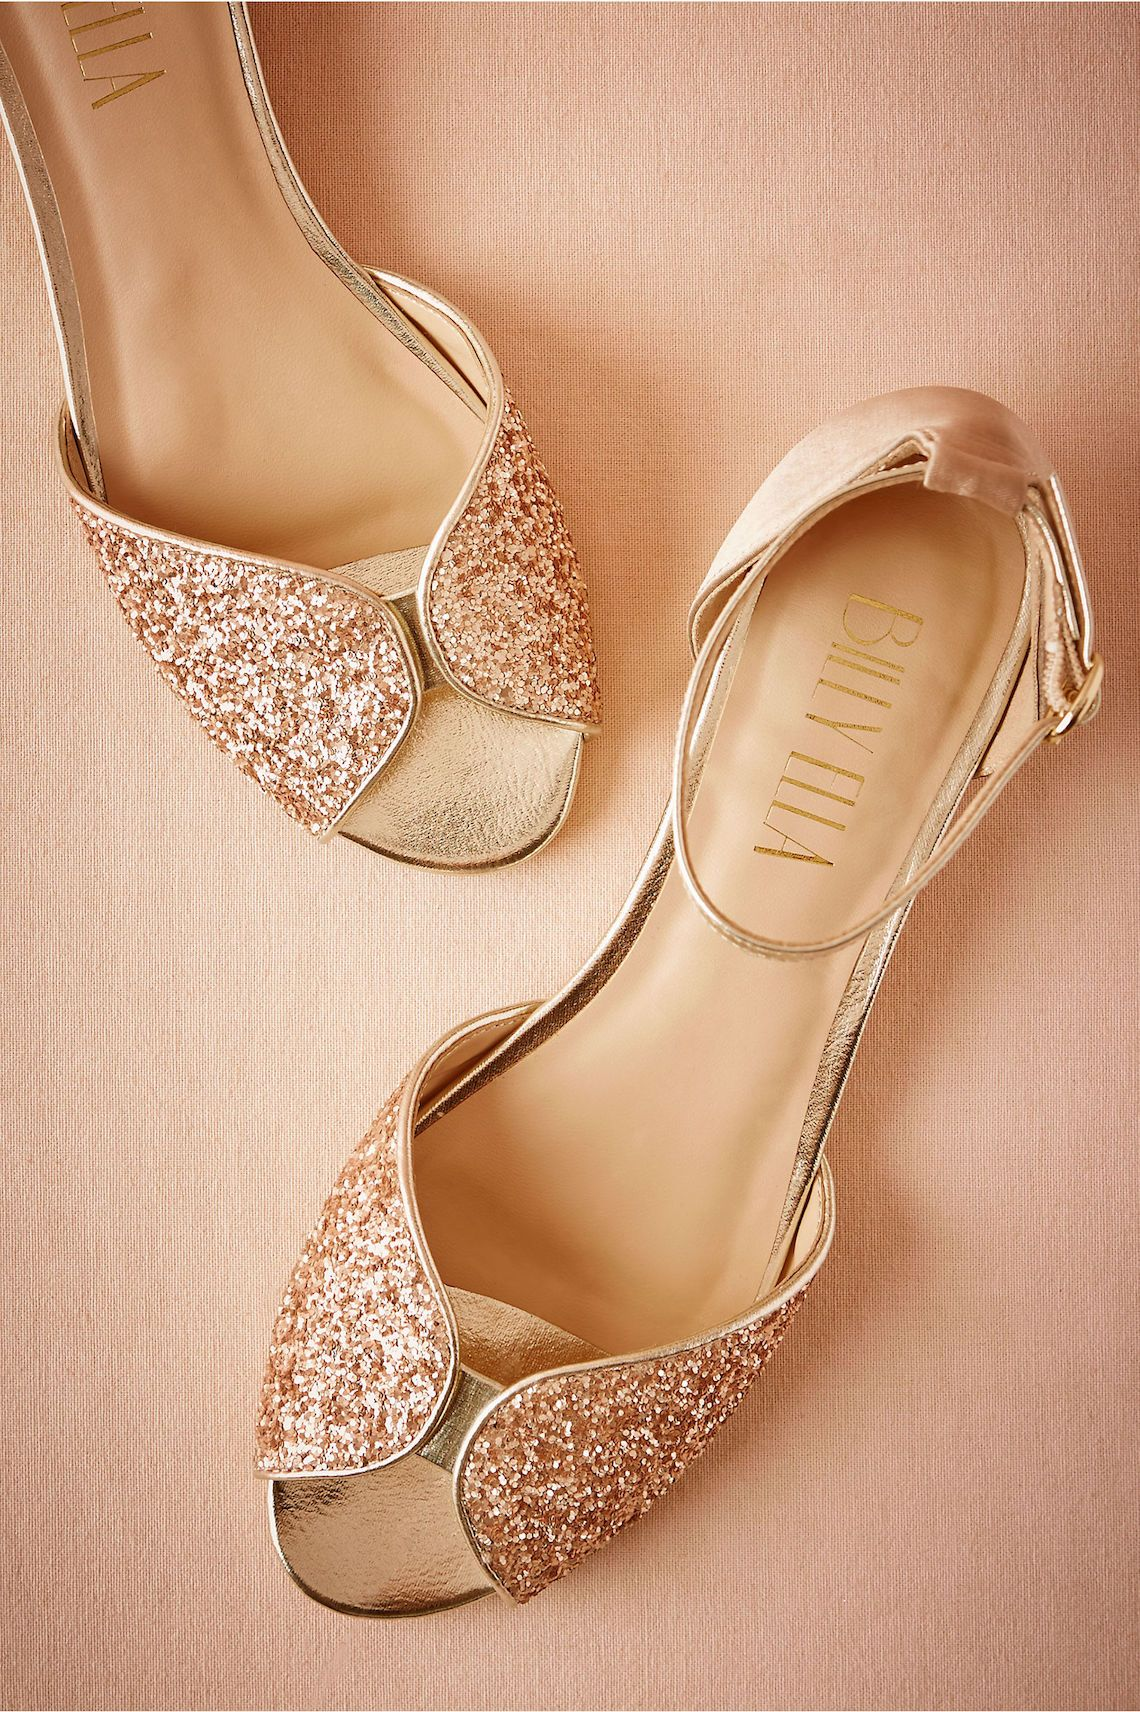 cc76d4f7c694e6 10 Flat Wedding Shoes (That Are Just As Chic As Heels)